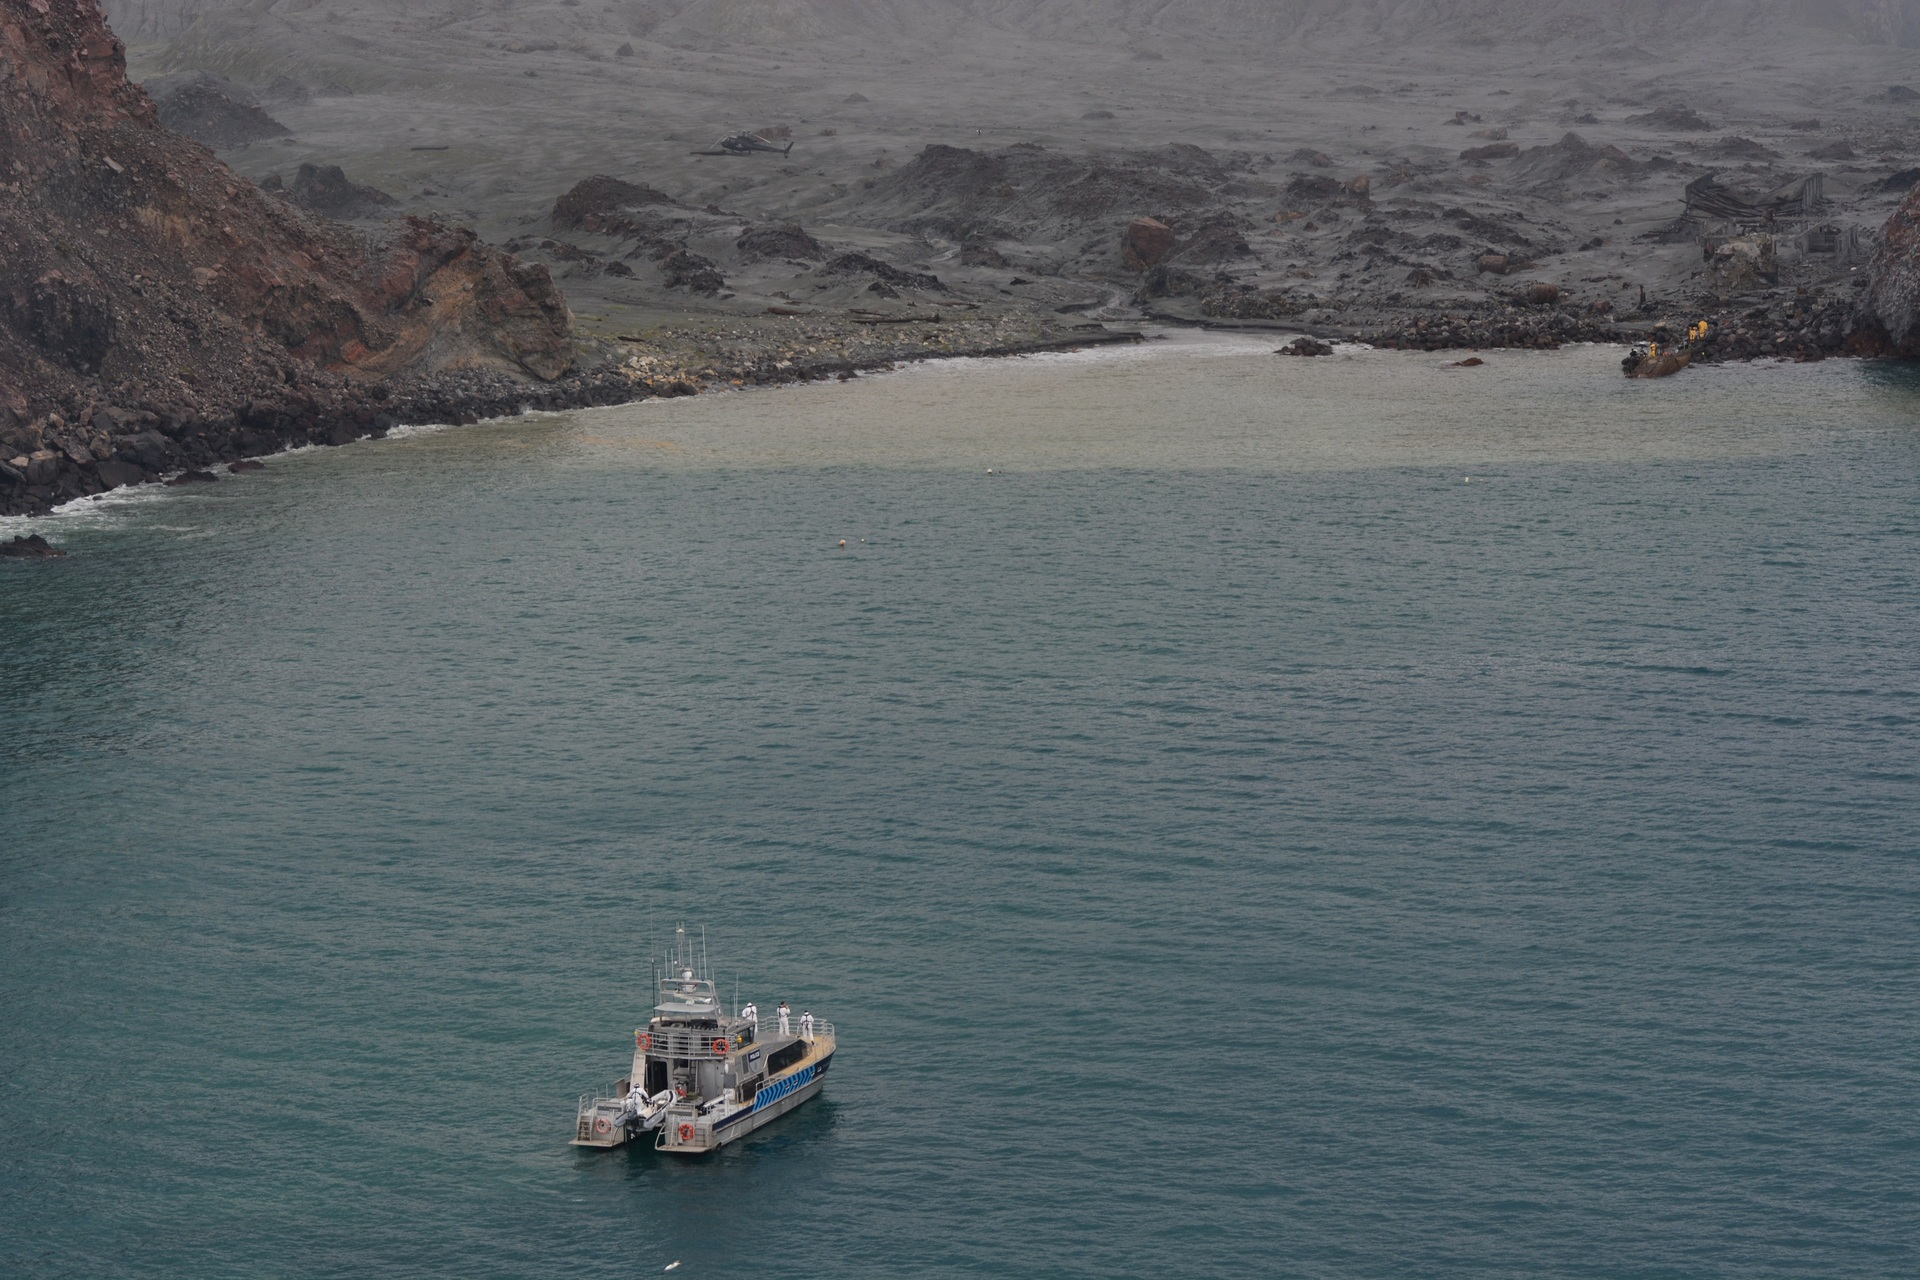 Live White Island rescue: Minute's silence on Monday, PM announces